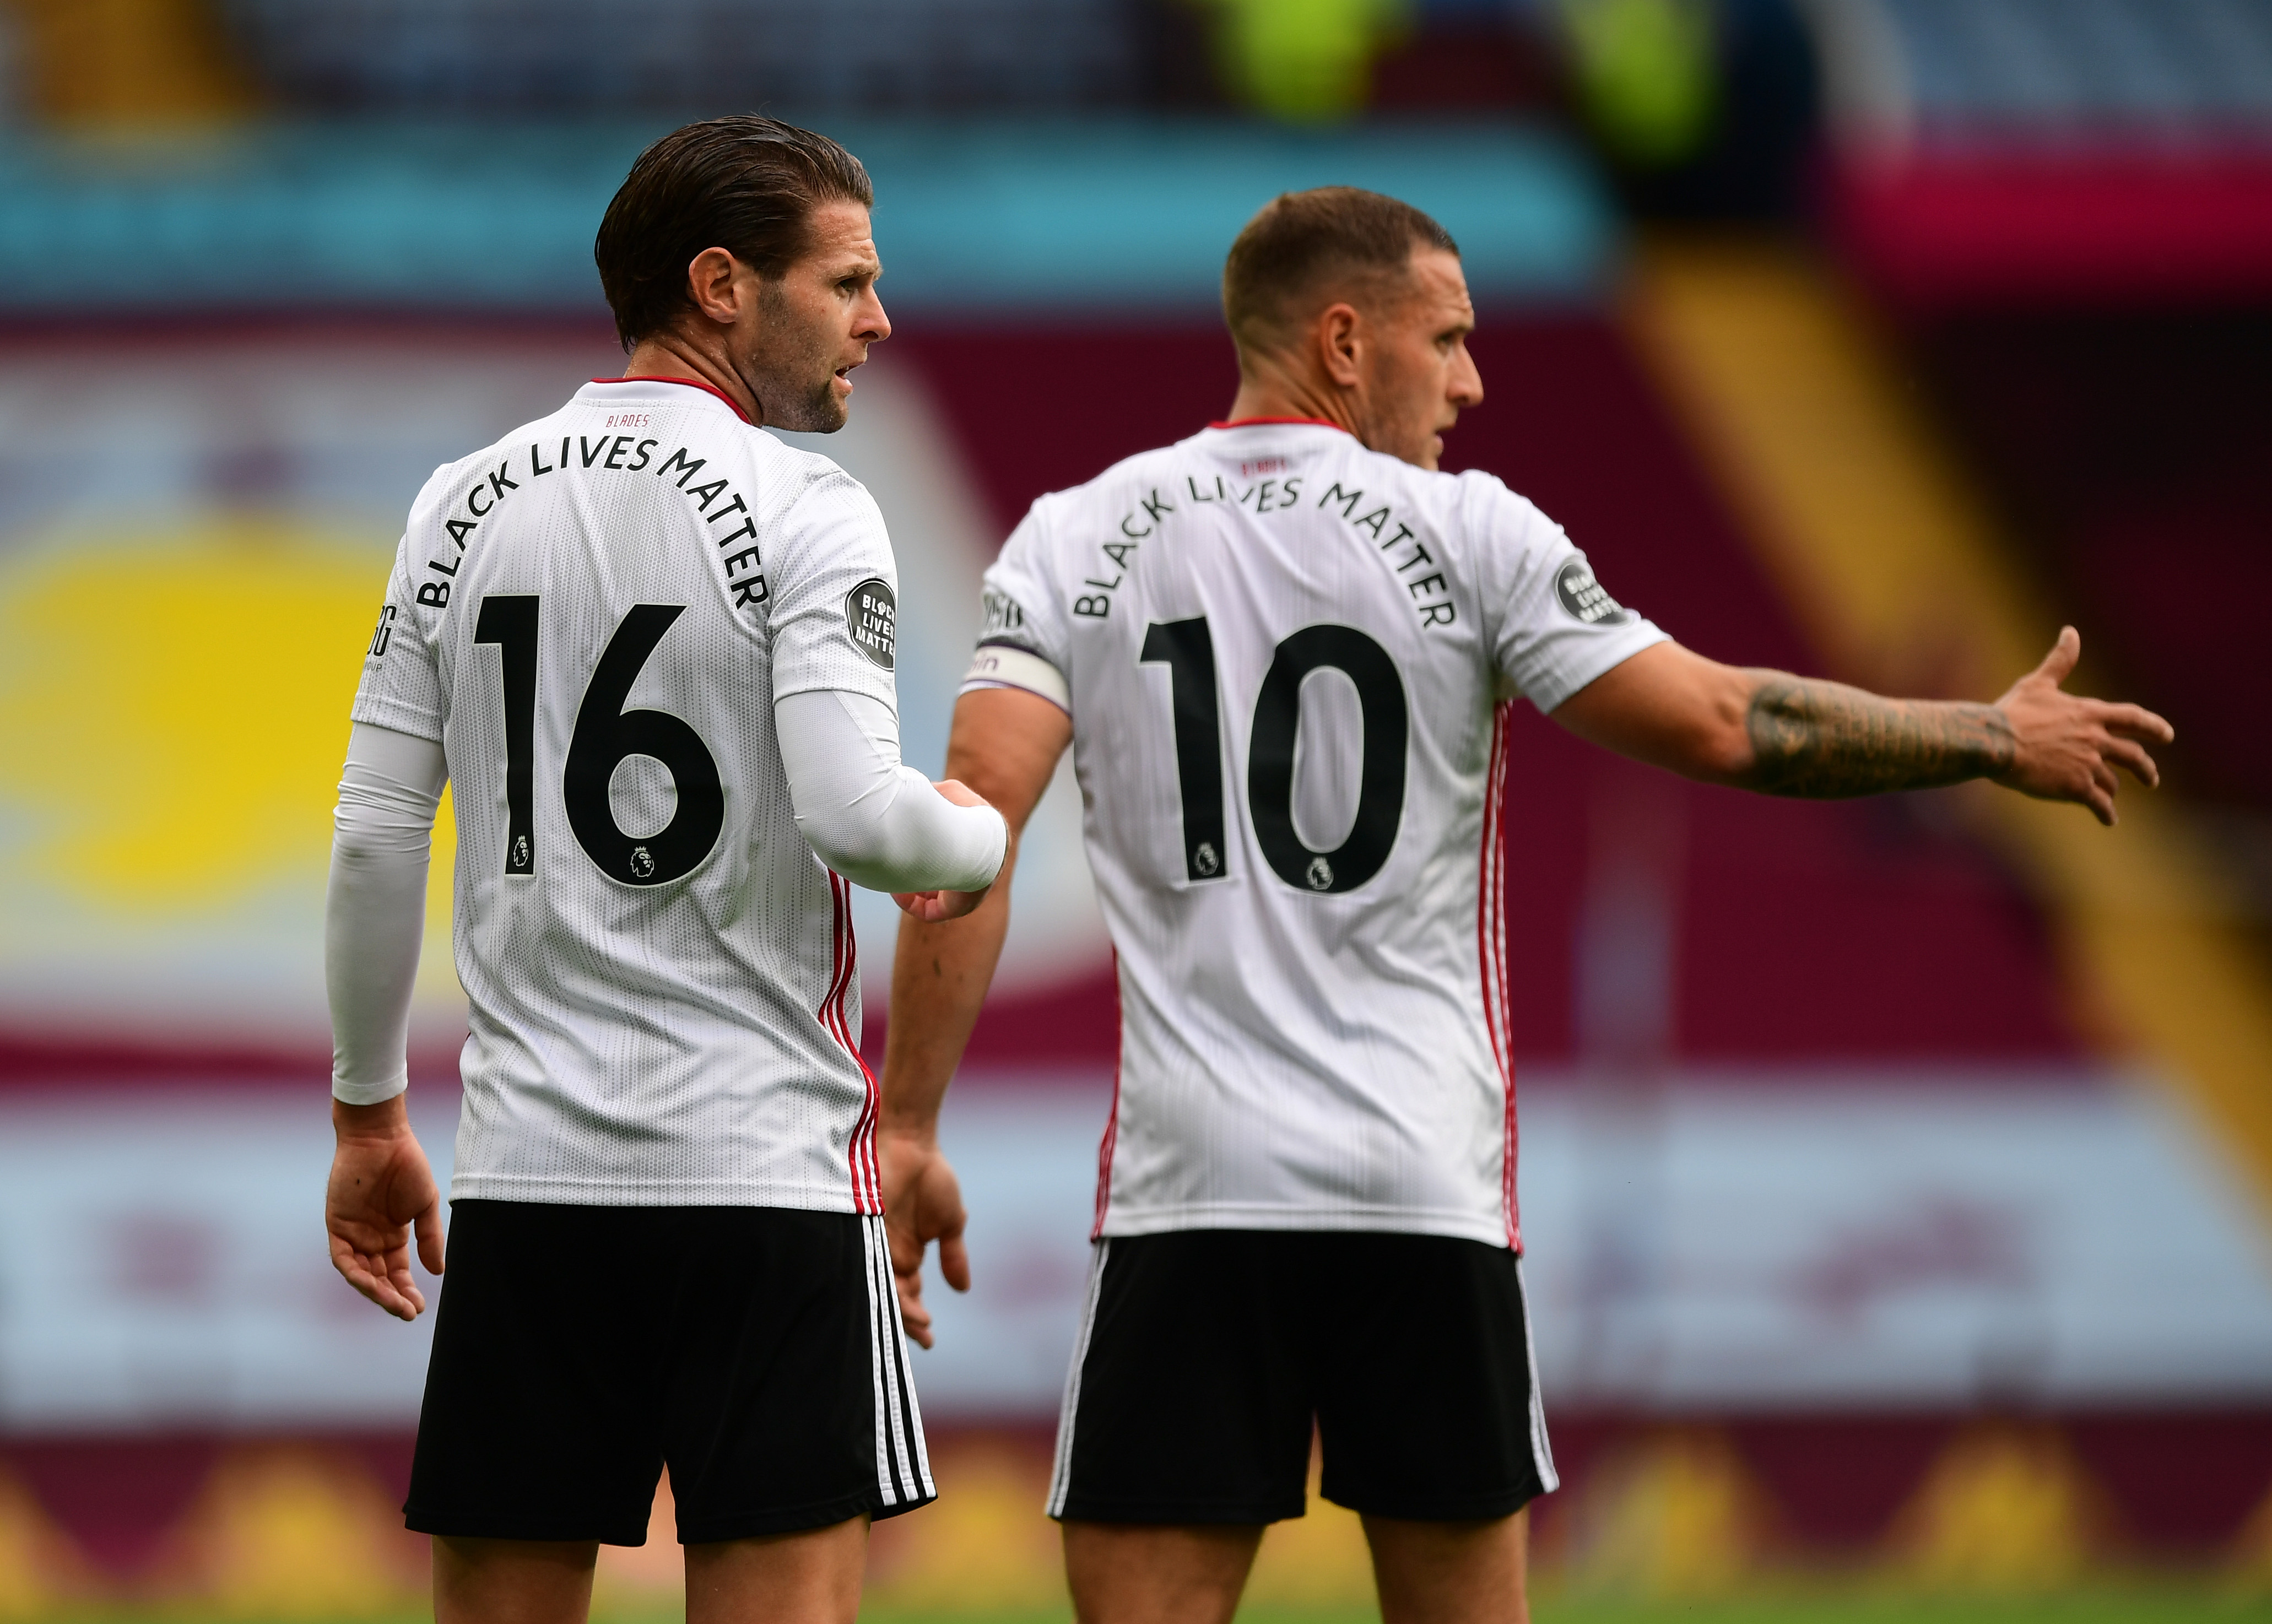 BIRMINGHAM, ENGLAND - JUNE 17:  Black Lives Matter writing is seen on the back of Ollie Norwood and Billy Sharp of Sheffield United shirts during the Premier League match between Aston Villa and Sheffield United at Villa Park on June 17, 2020 in Birmingham, England. (Photo by Shaun Botterill/Getty Images)